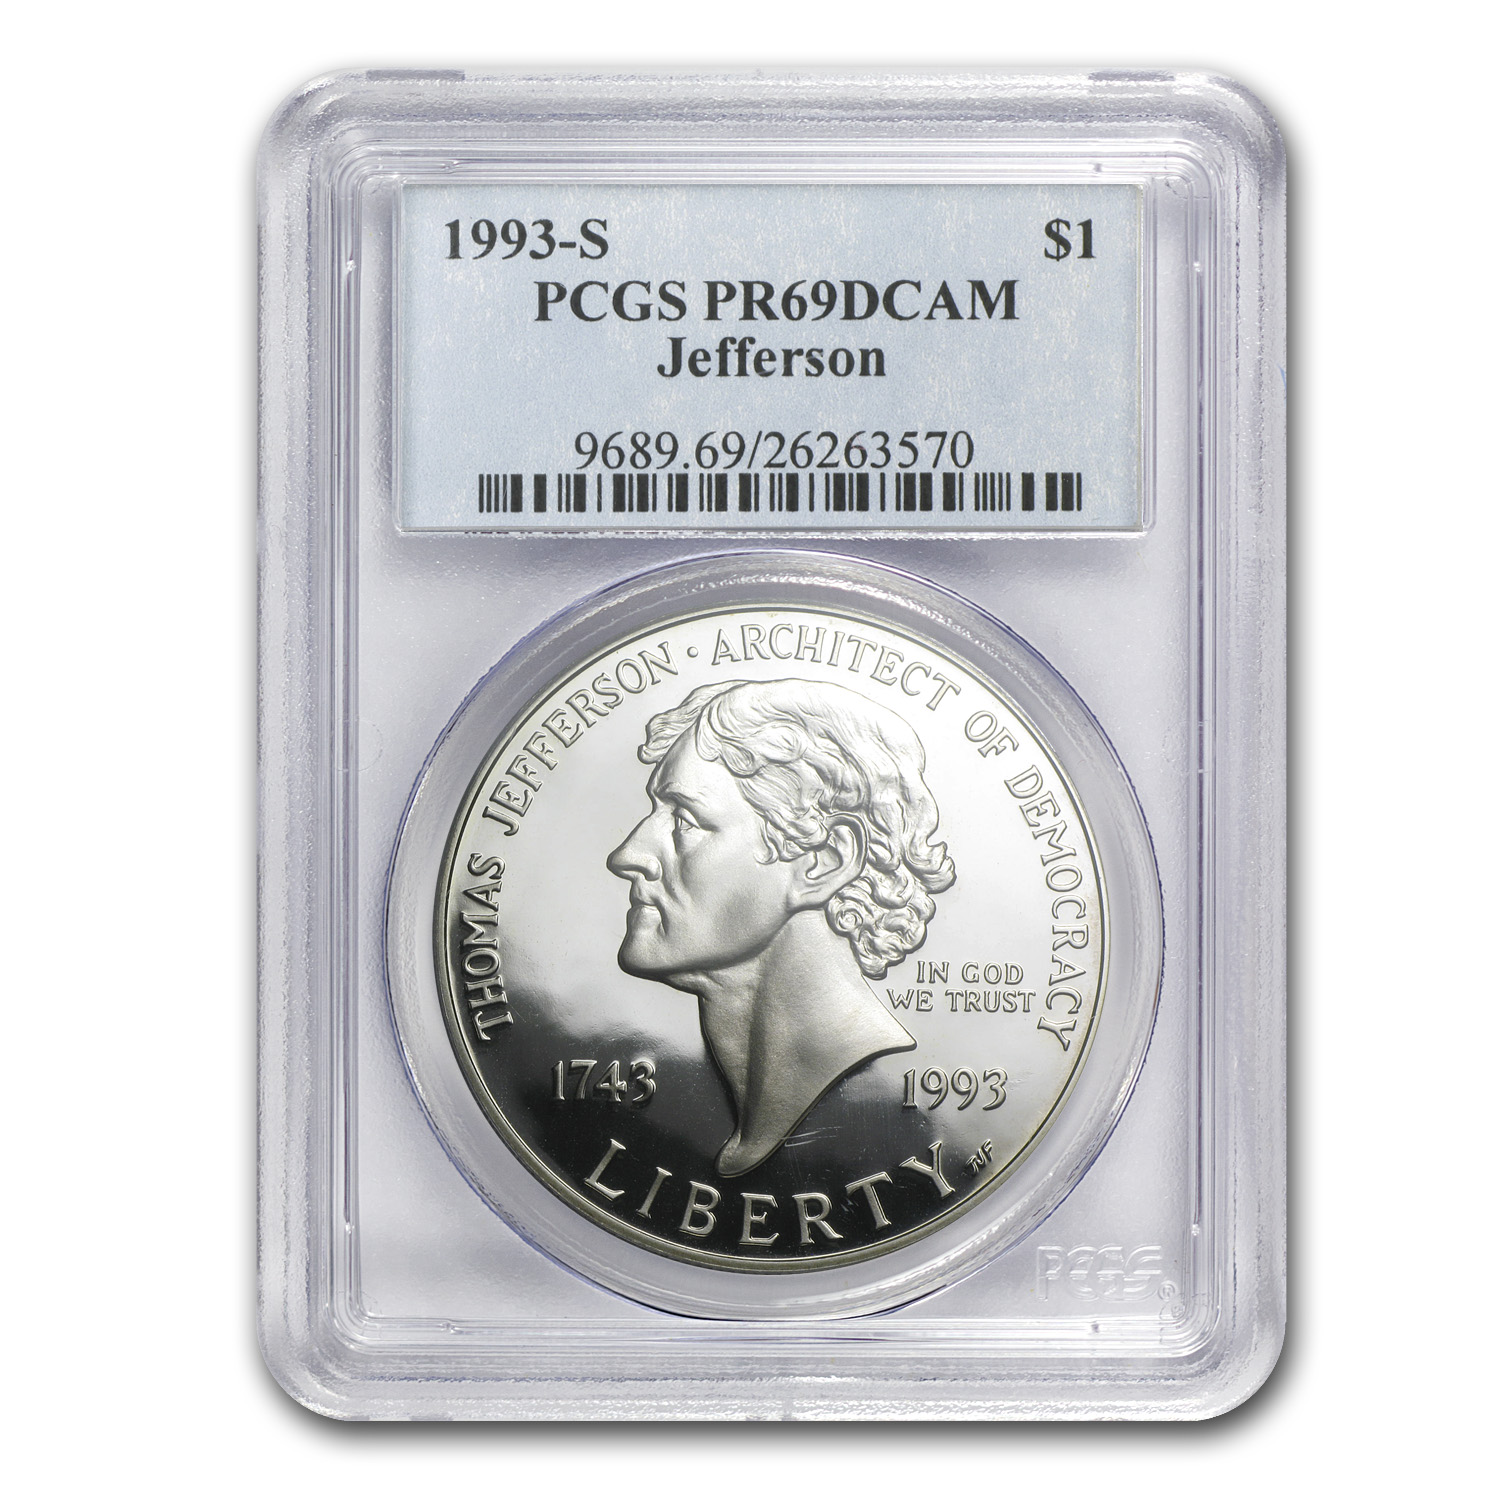 1993-S Jefferson 250th Anniv. $1 Silver Commem PR-69 DCAM PCGS